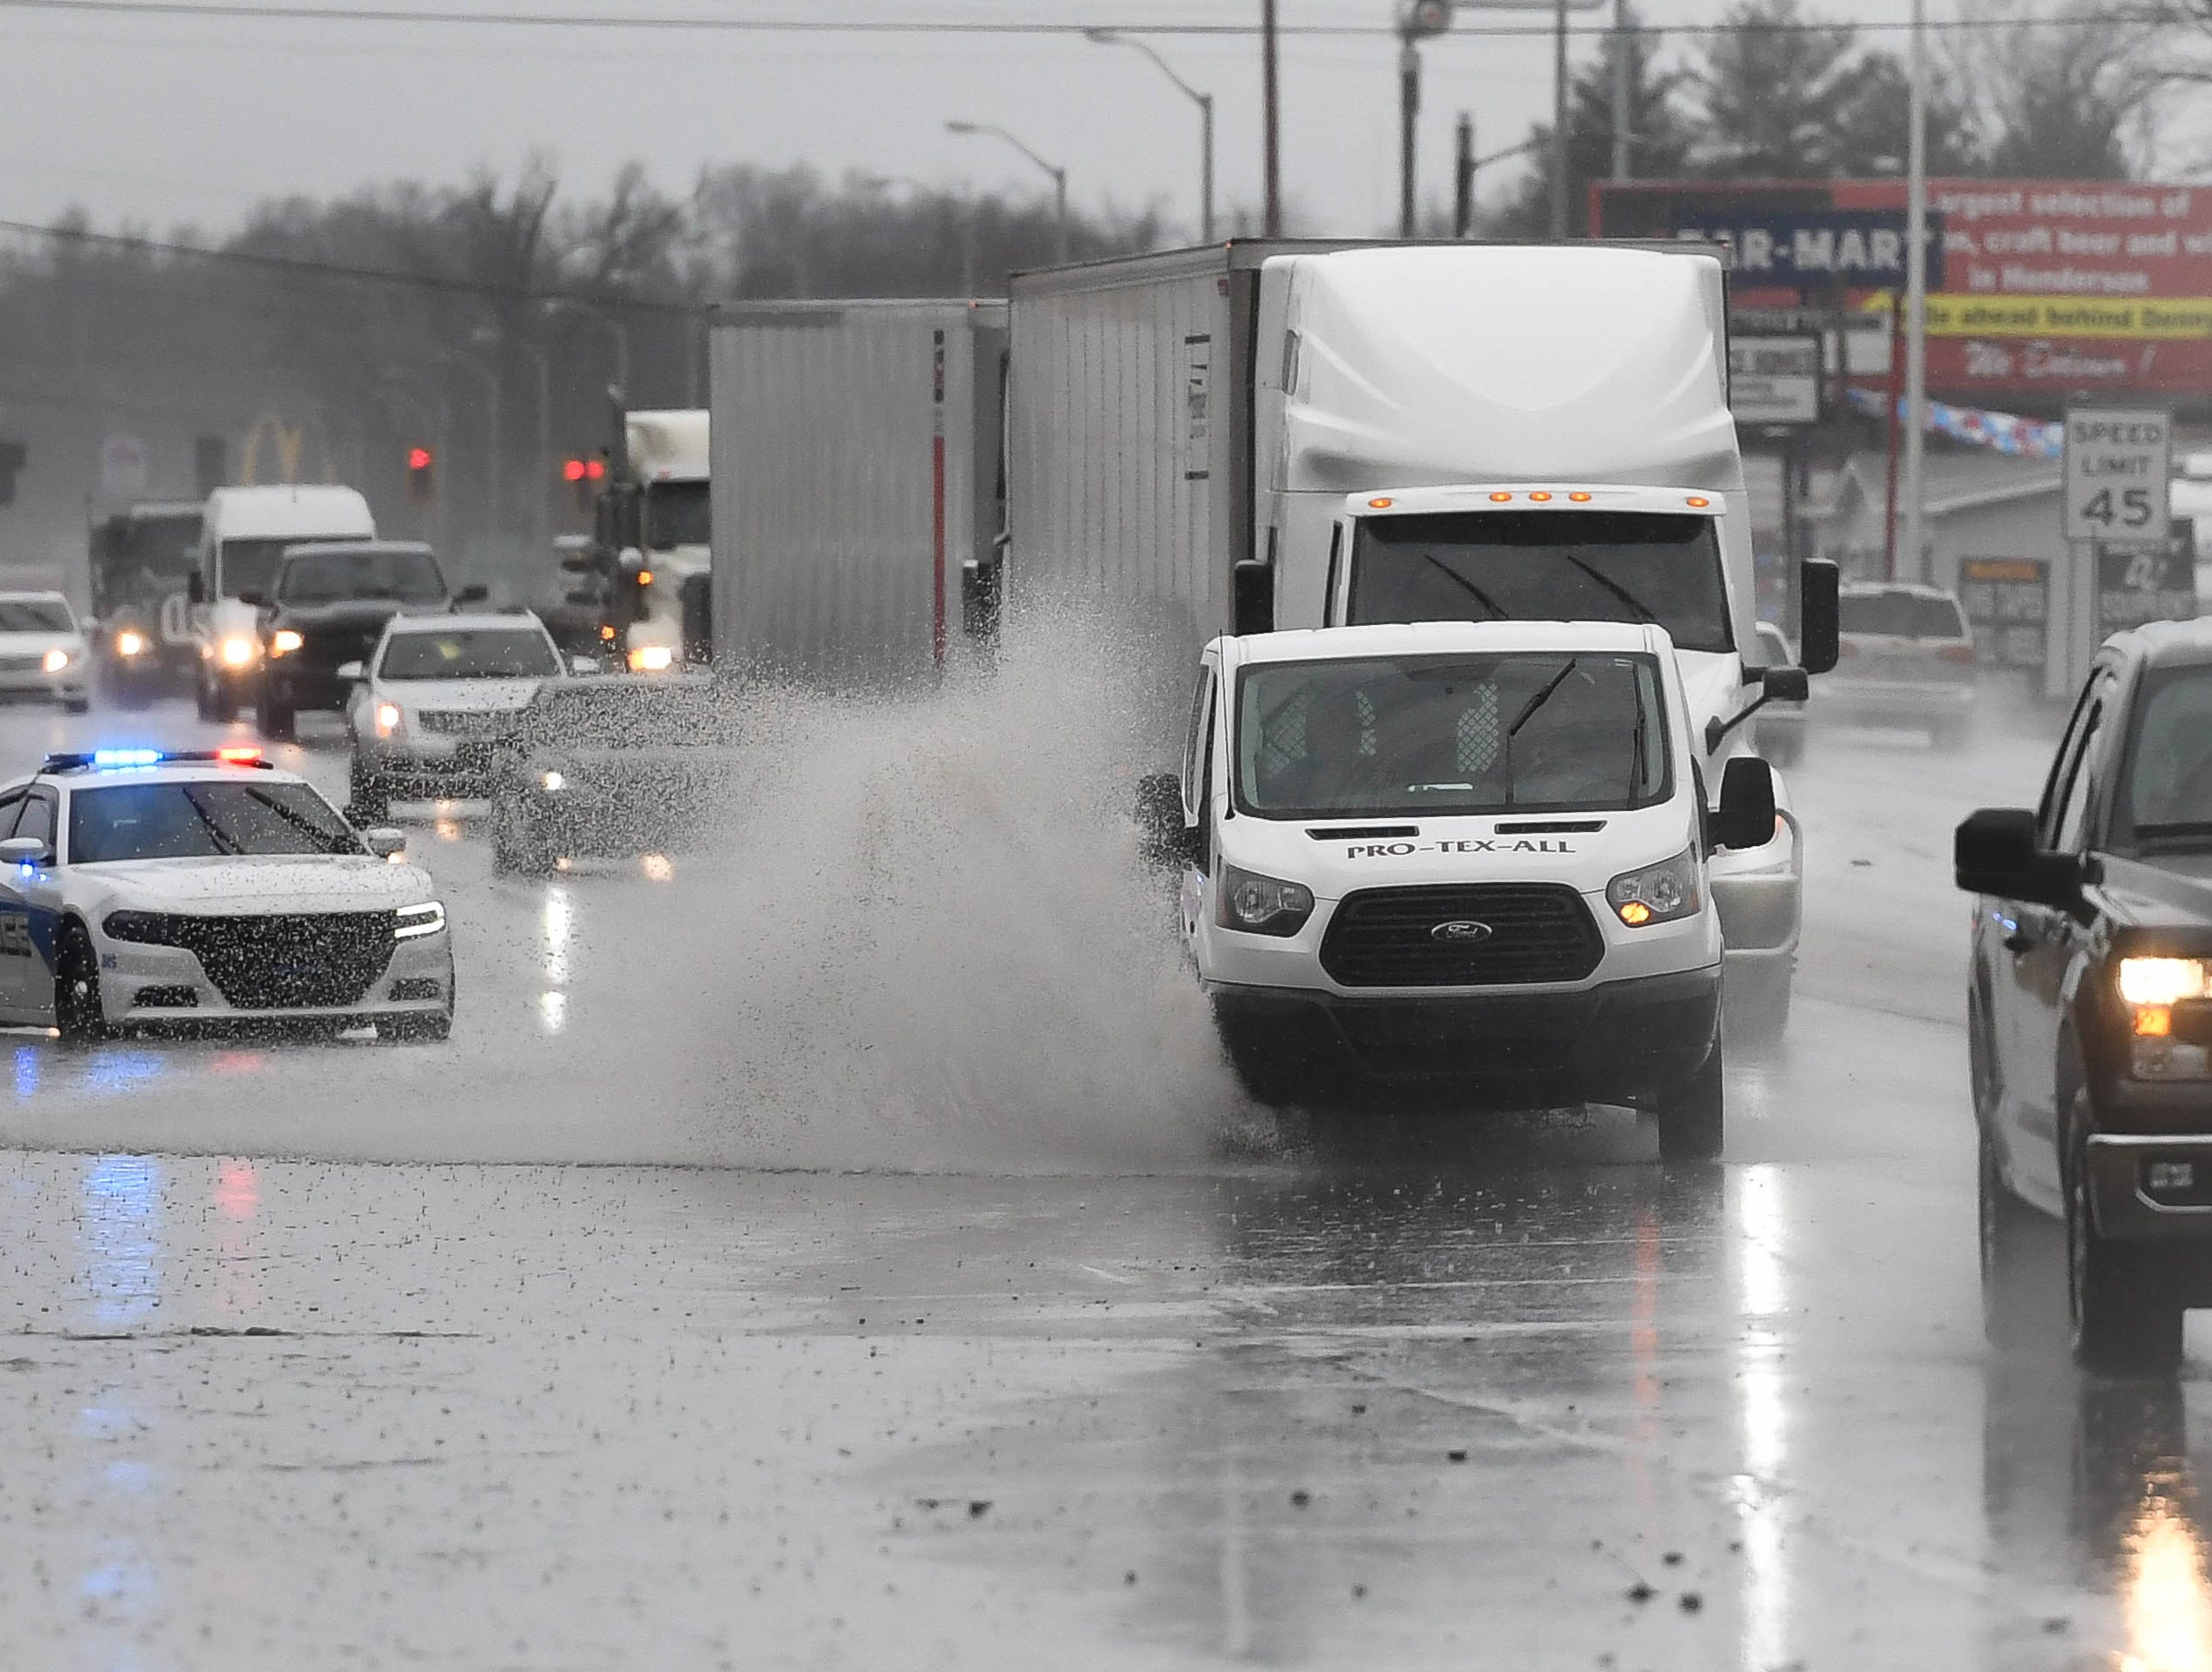 Police divert traffic away from a flooded lane on U.S. 41 North near Audubon State Park following a mid-day downpour Thursday, February 7, 2019.